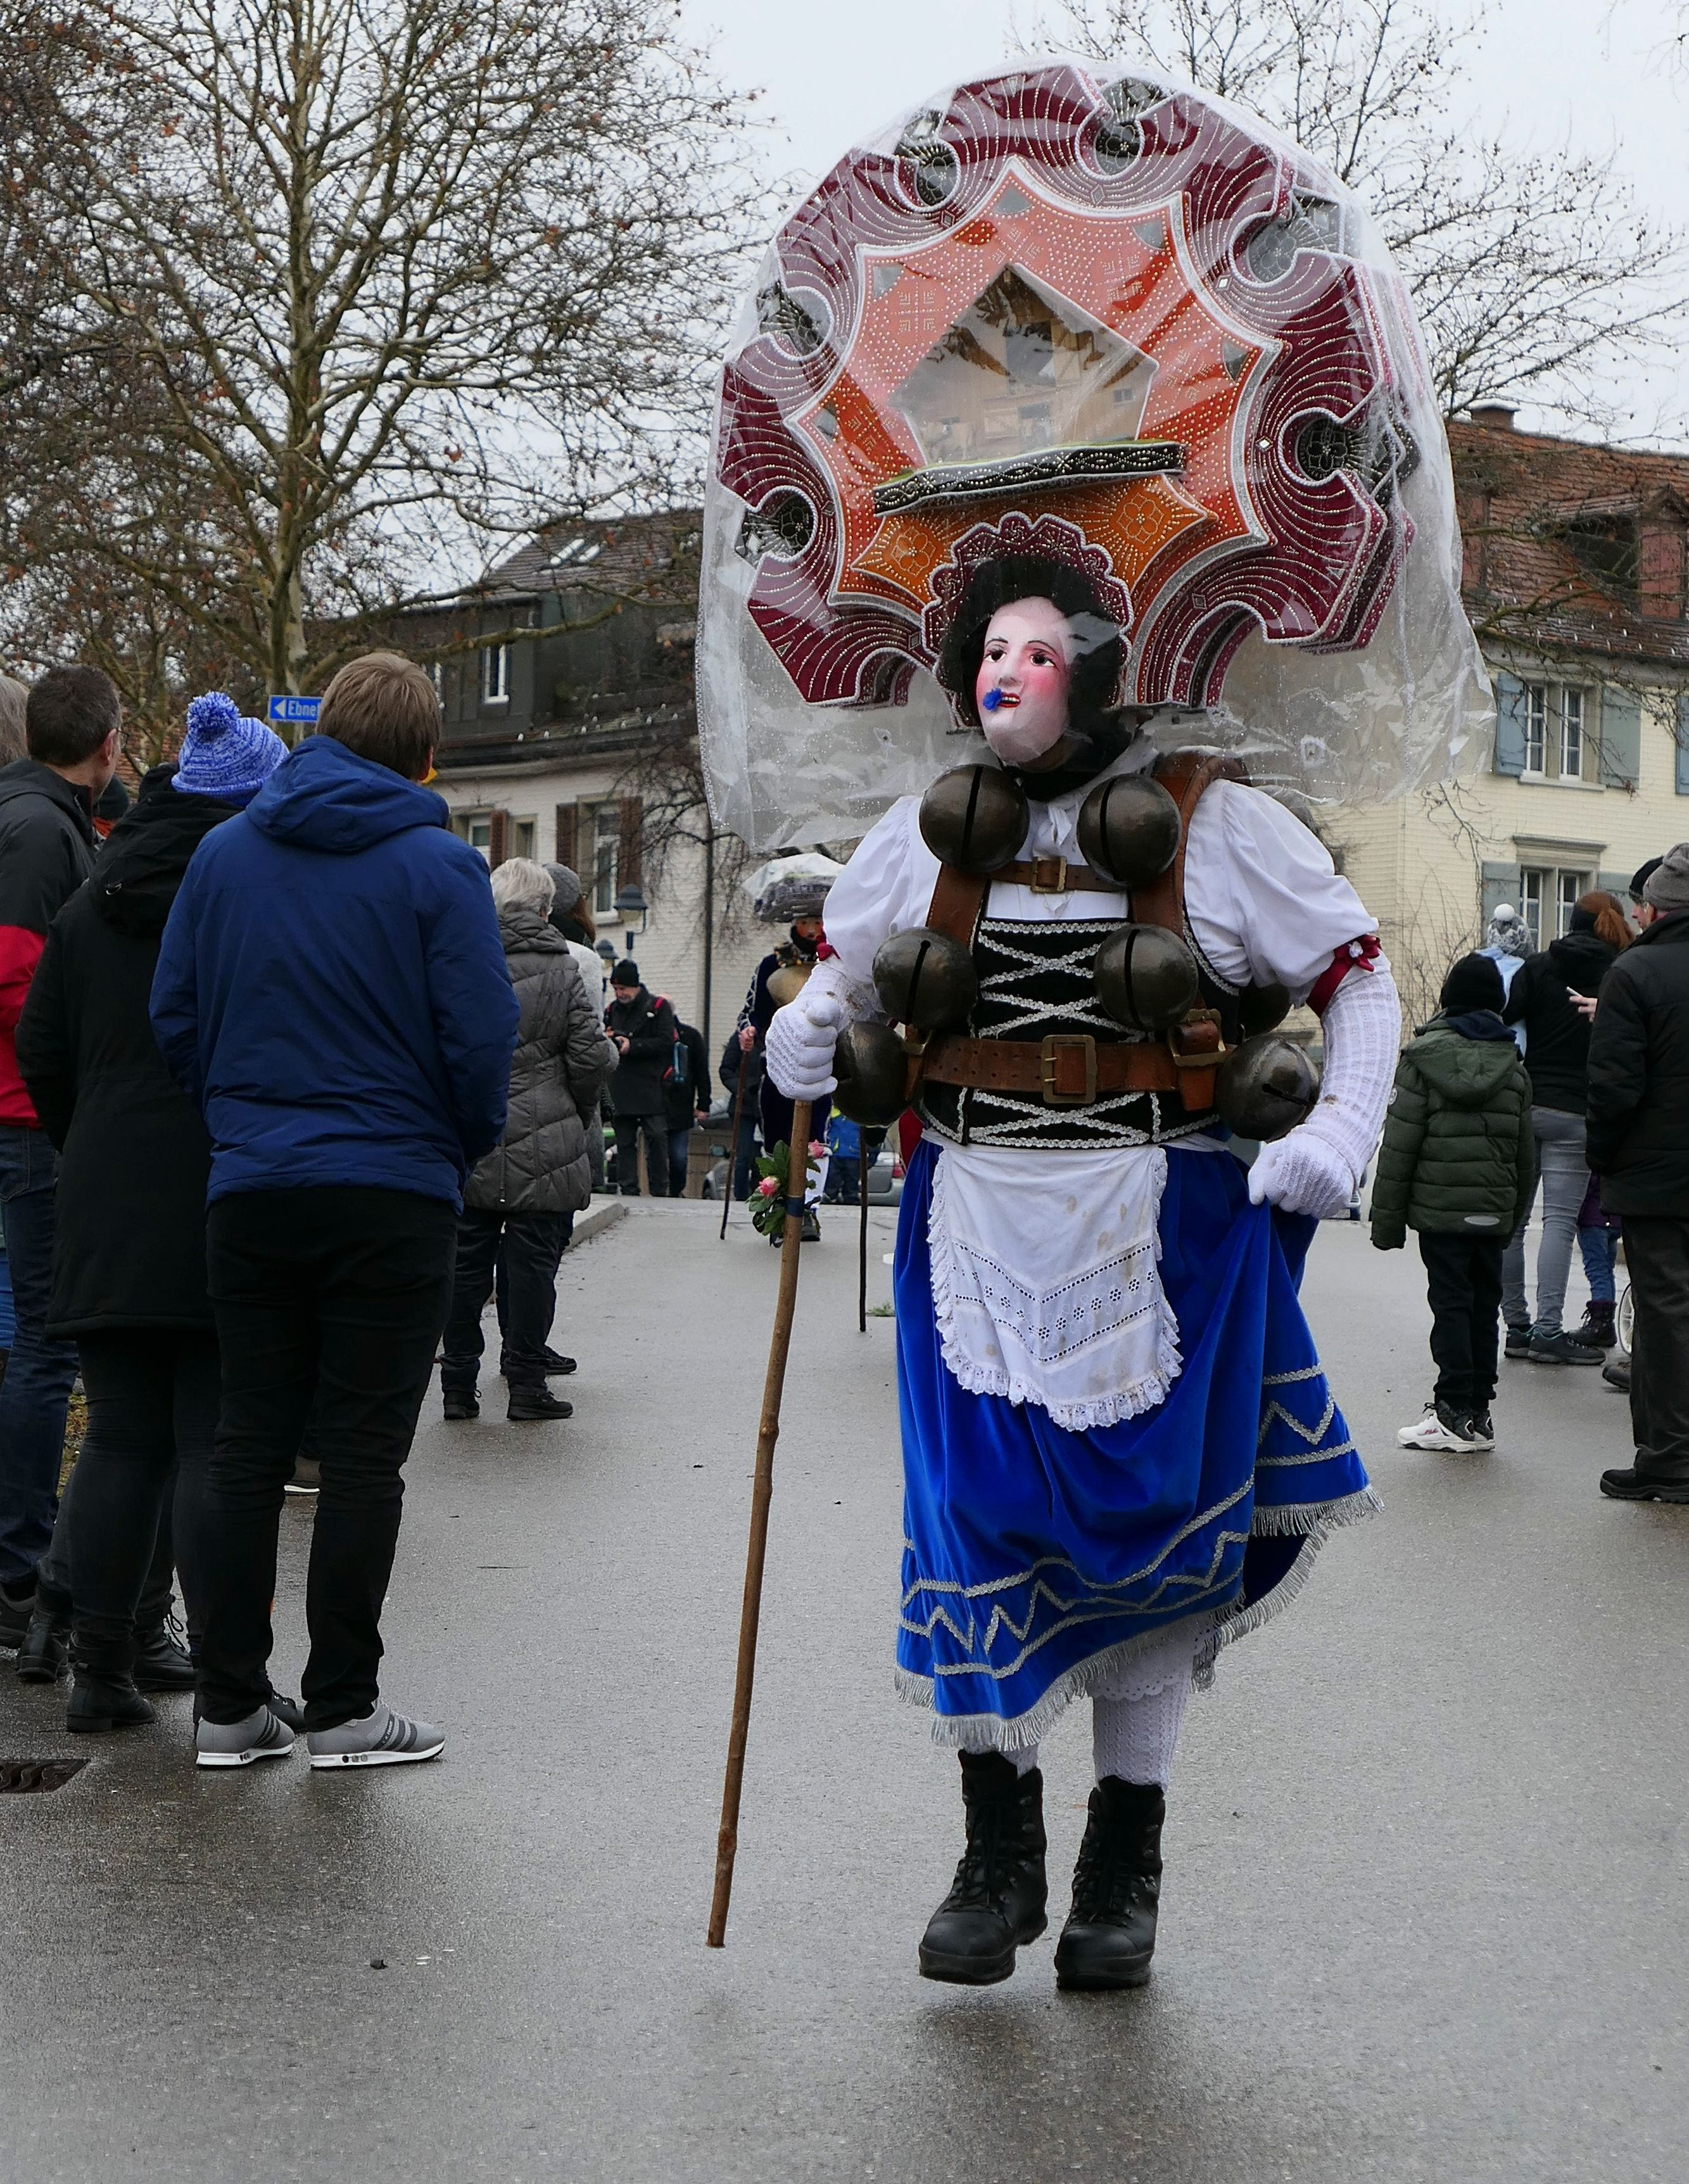 Silvesterchlausen Ringing in the New Year in Appenzell